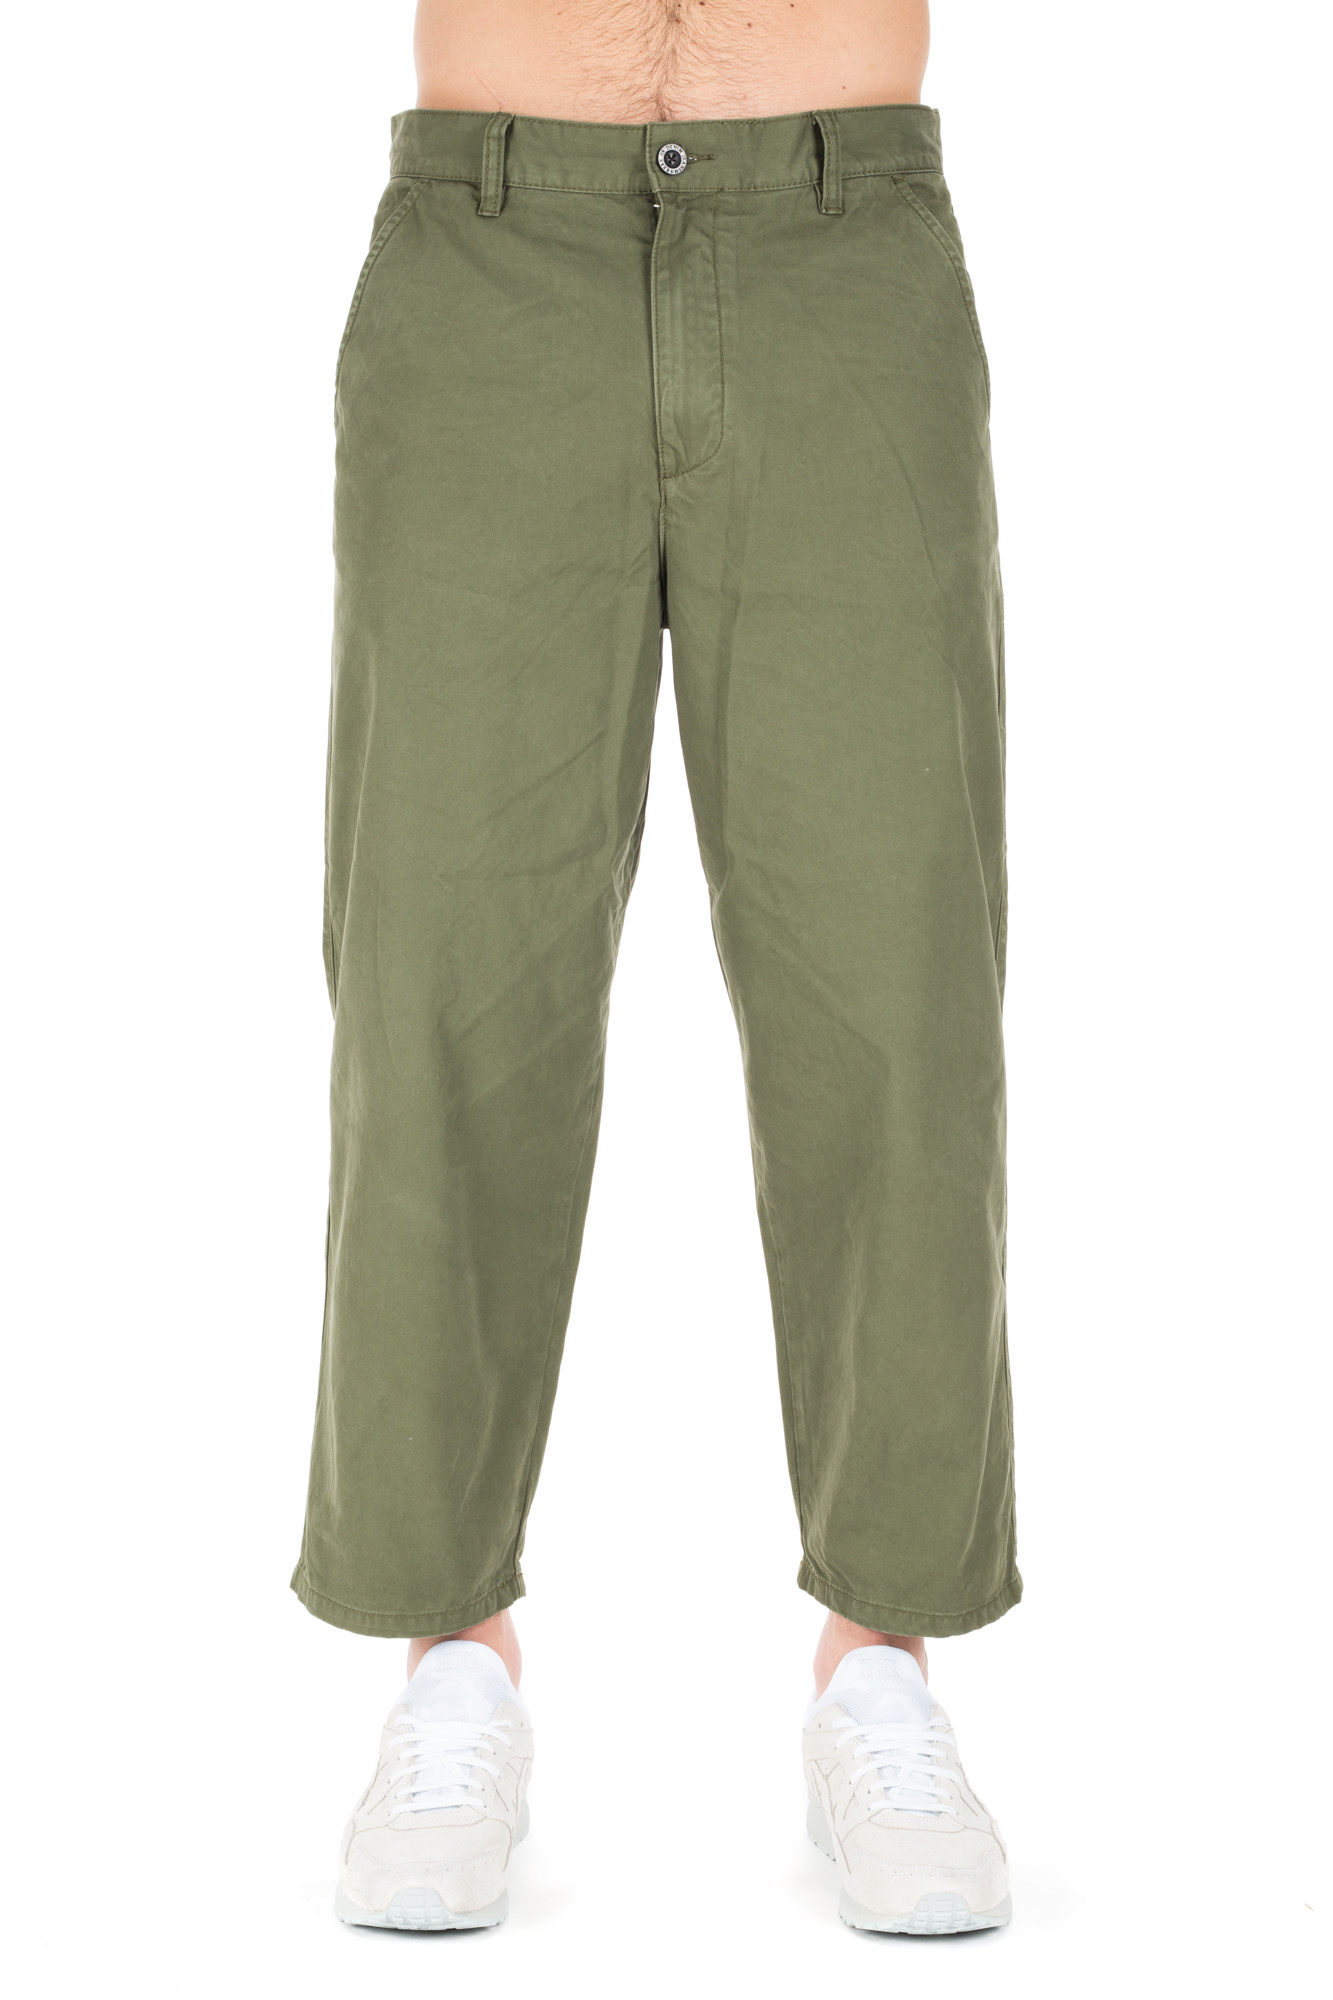 Dr. Denim - Wide Khaki Trousers